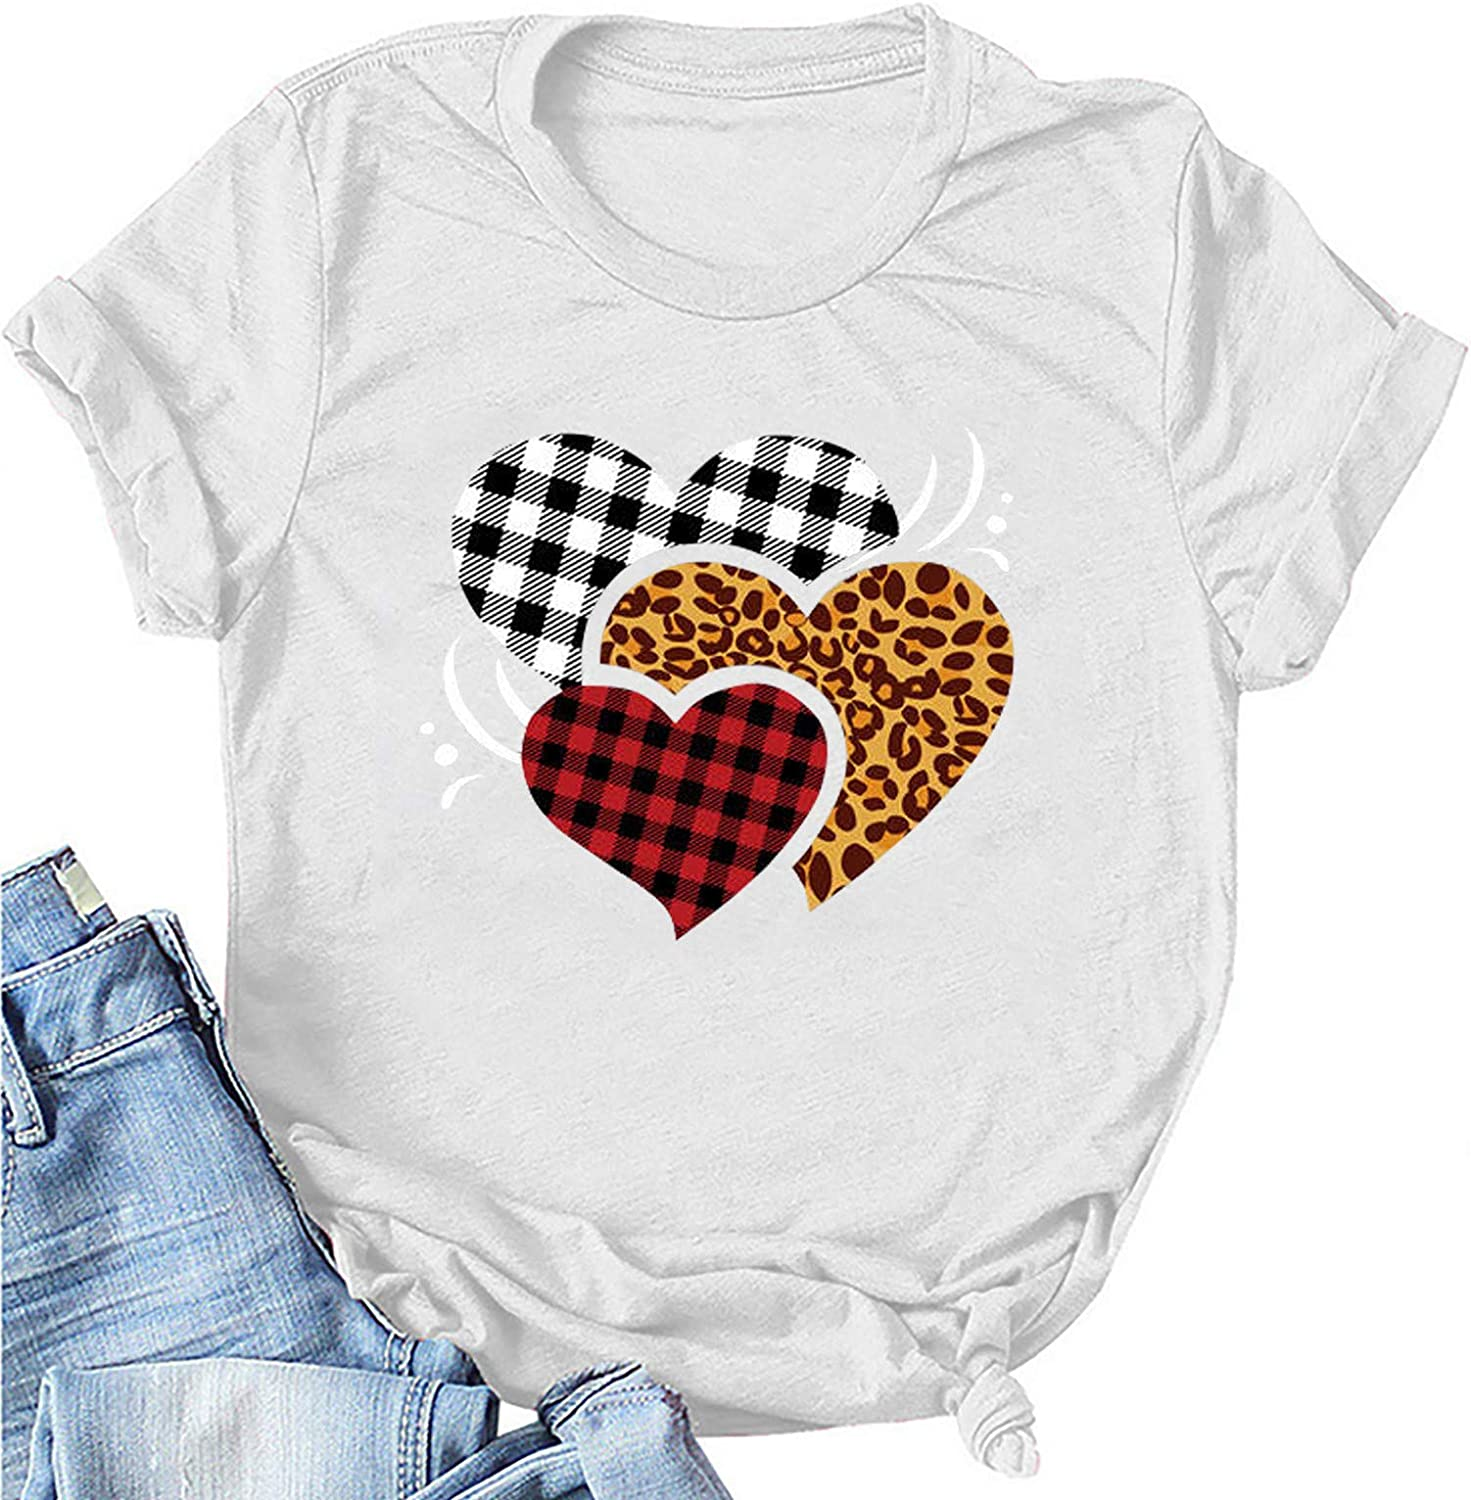 Womens Cheap sale Max 48% OFF Valentines Day Shirts Vintage Tees Plaid Graphic Leopard